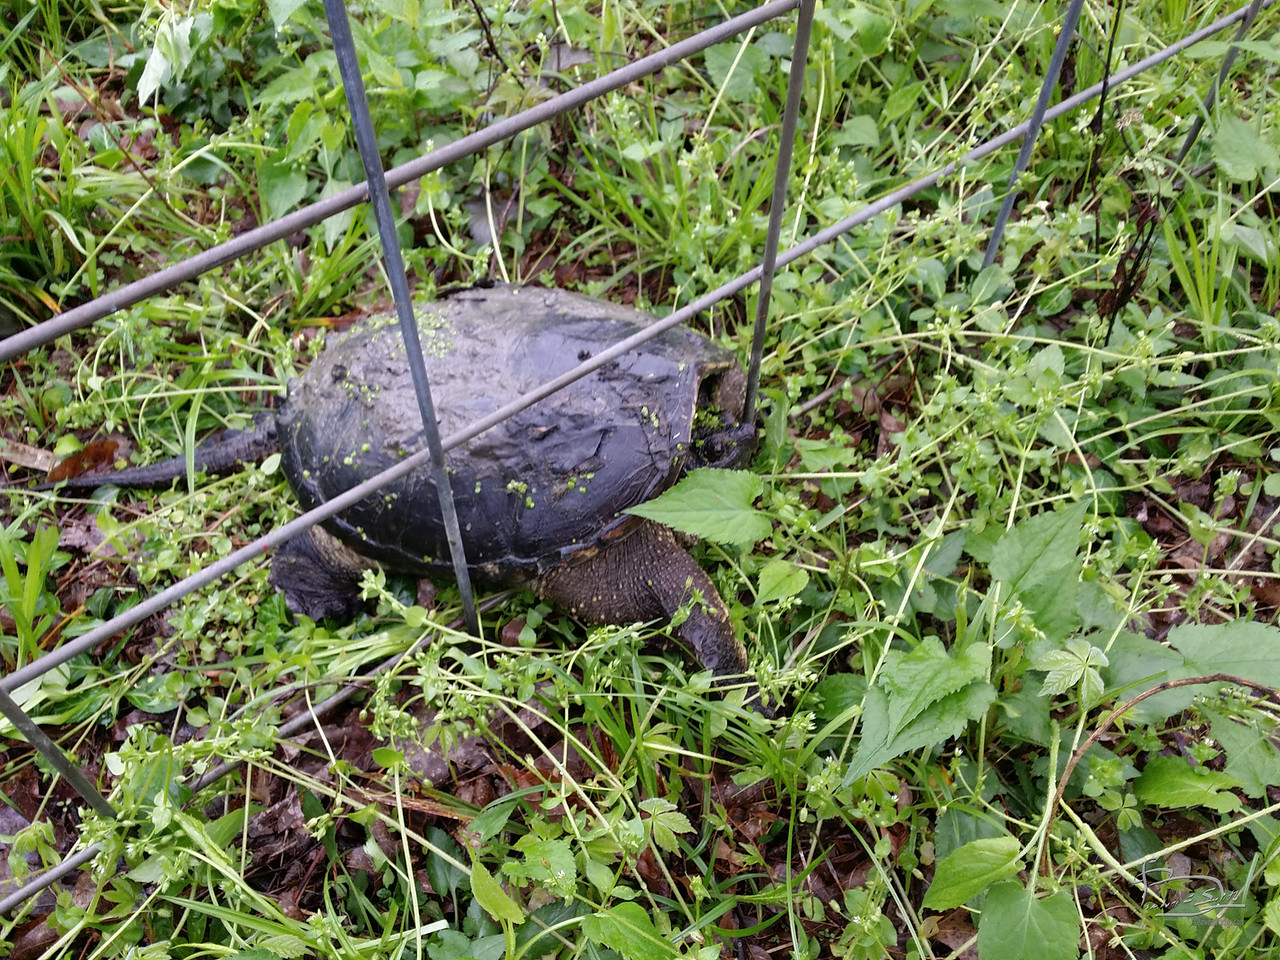 Snapping turtle having difficulties getting through the fence.